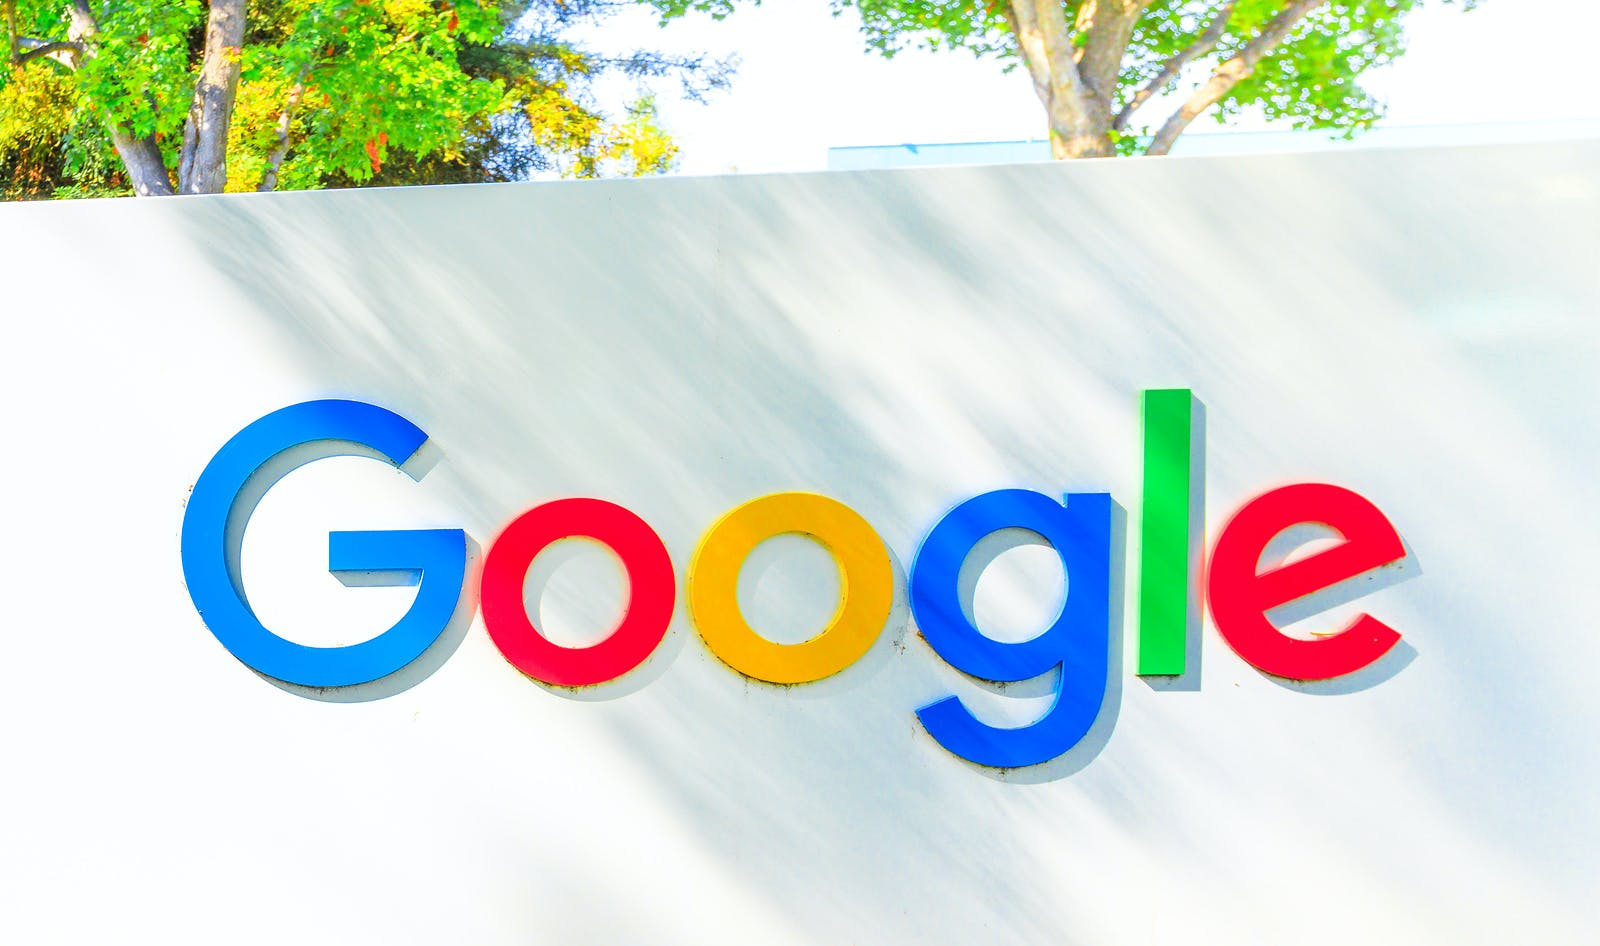 Mountain View, California, USA – August 13, 2018: Google logo isolated from a Google headquarters sign. Google technology leader in internet services, online advertising, search engine, cloud storage.